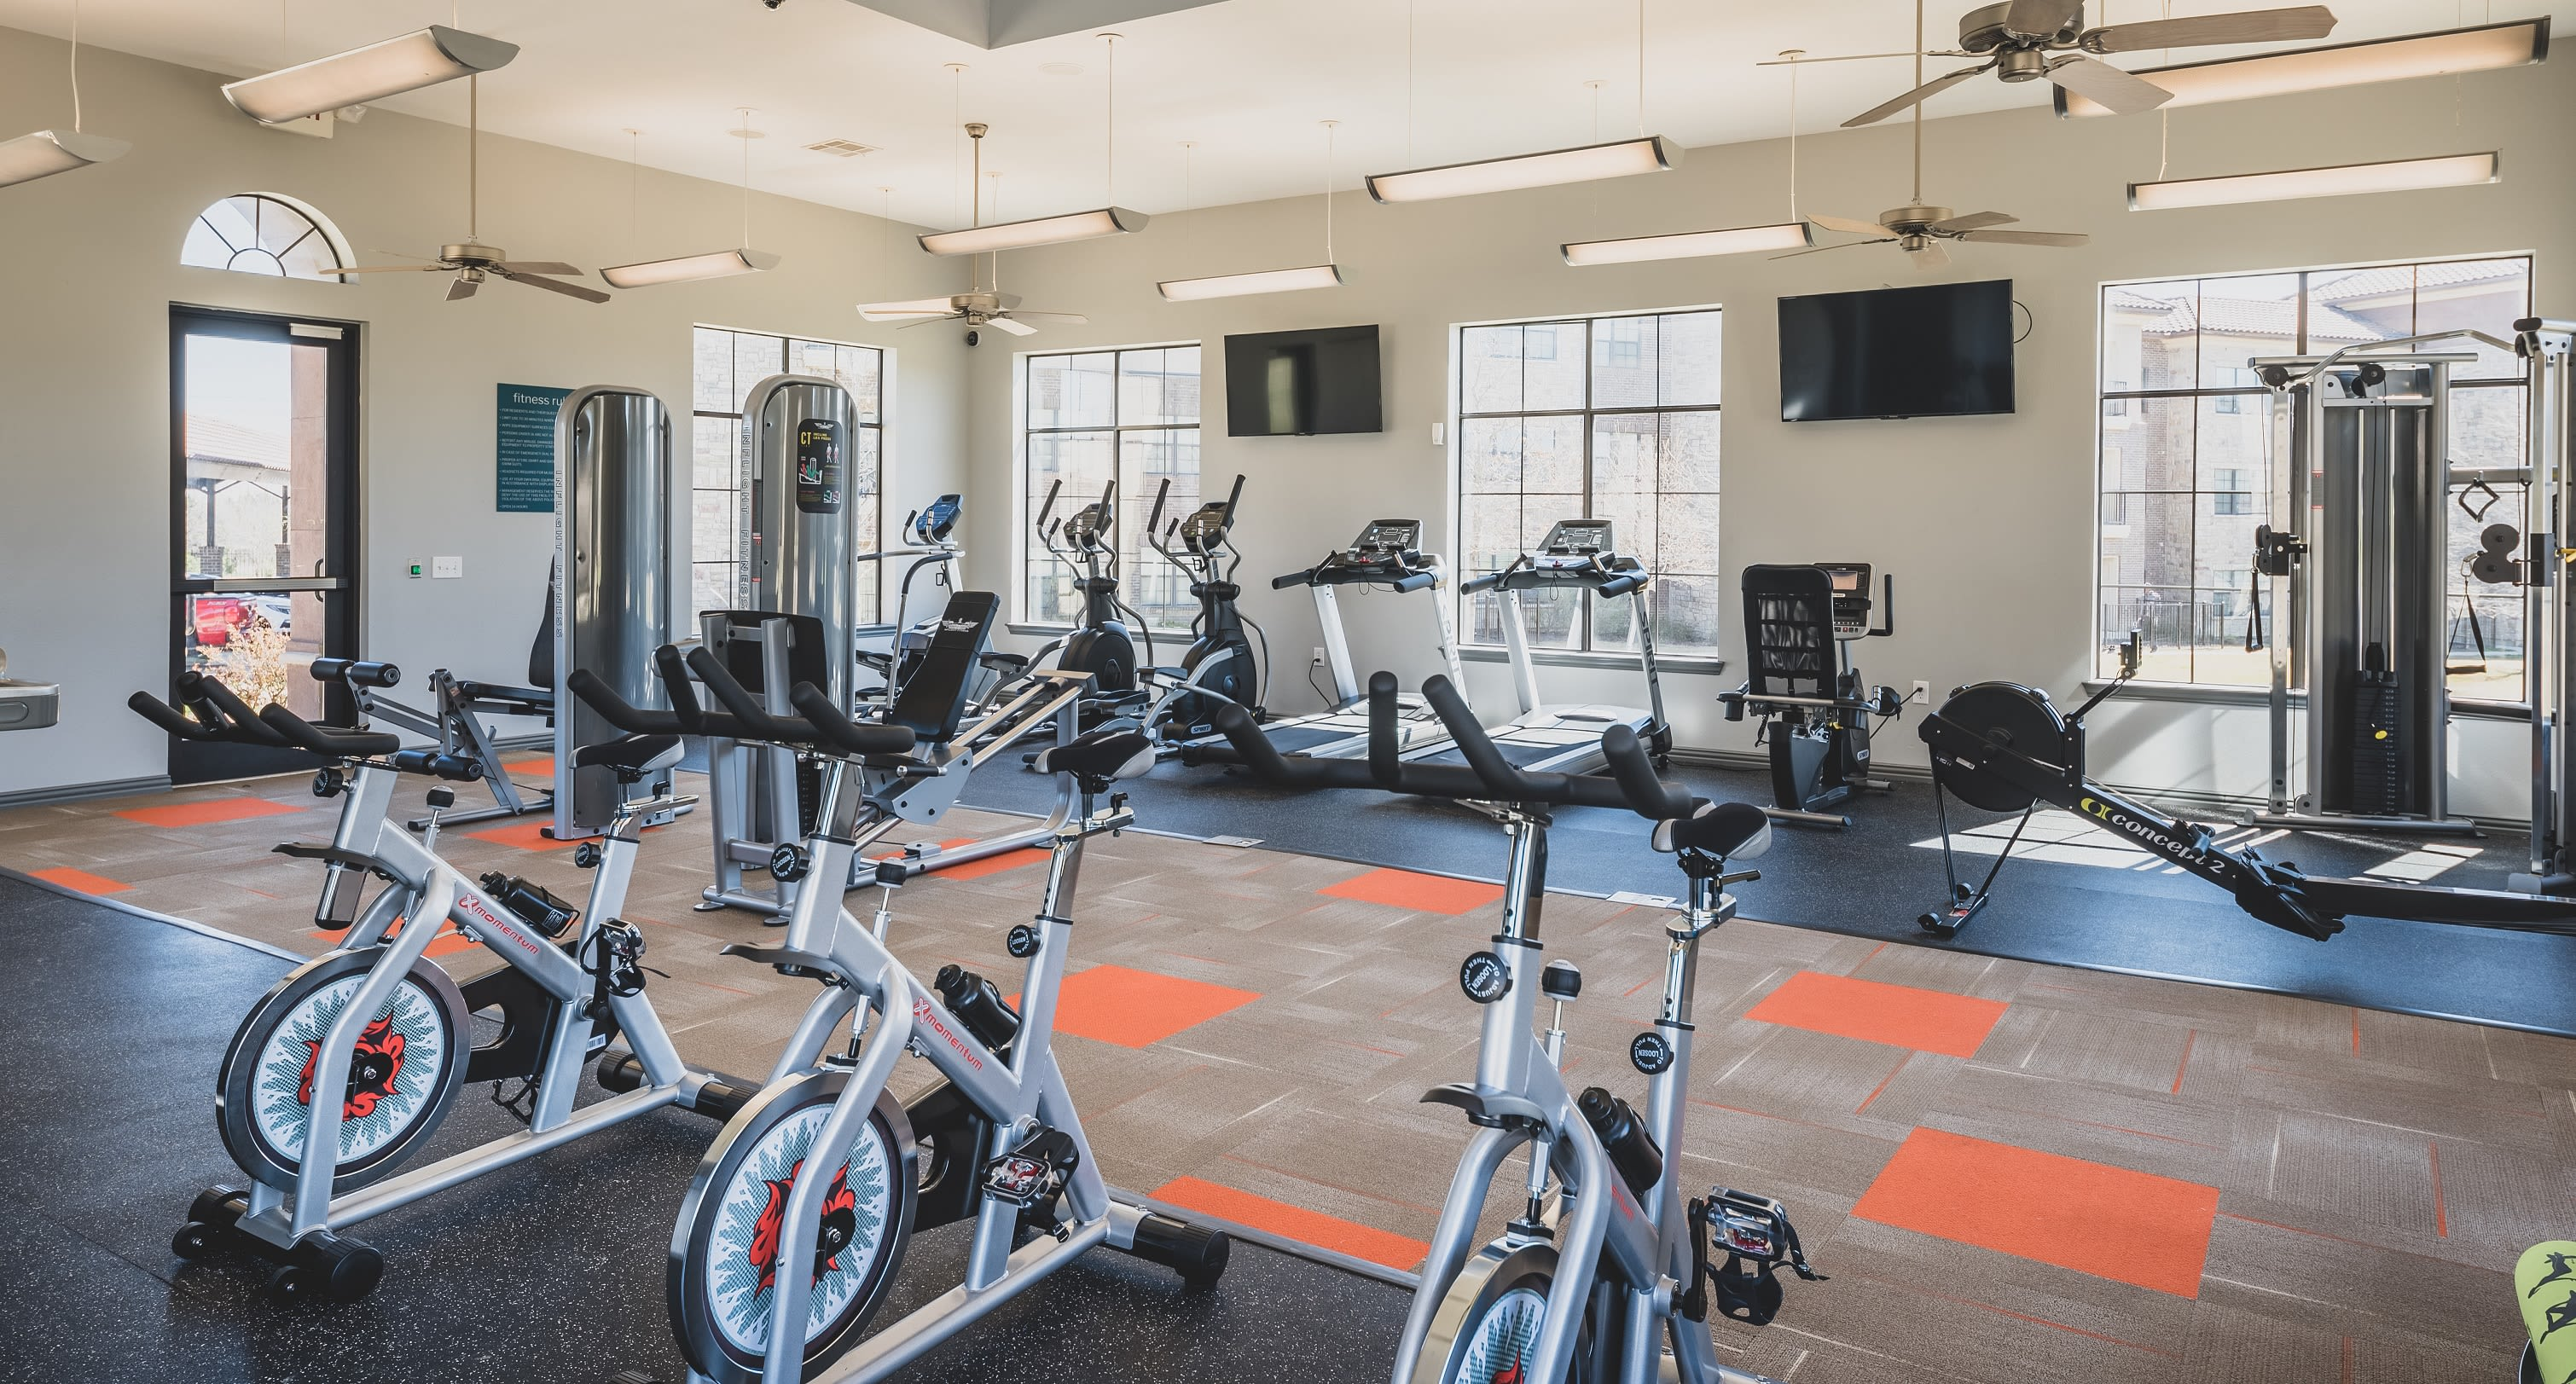 Plenty of indoor fitness bikes at Evolv in Mansfield, Texas